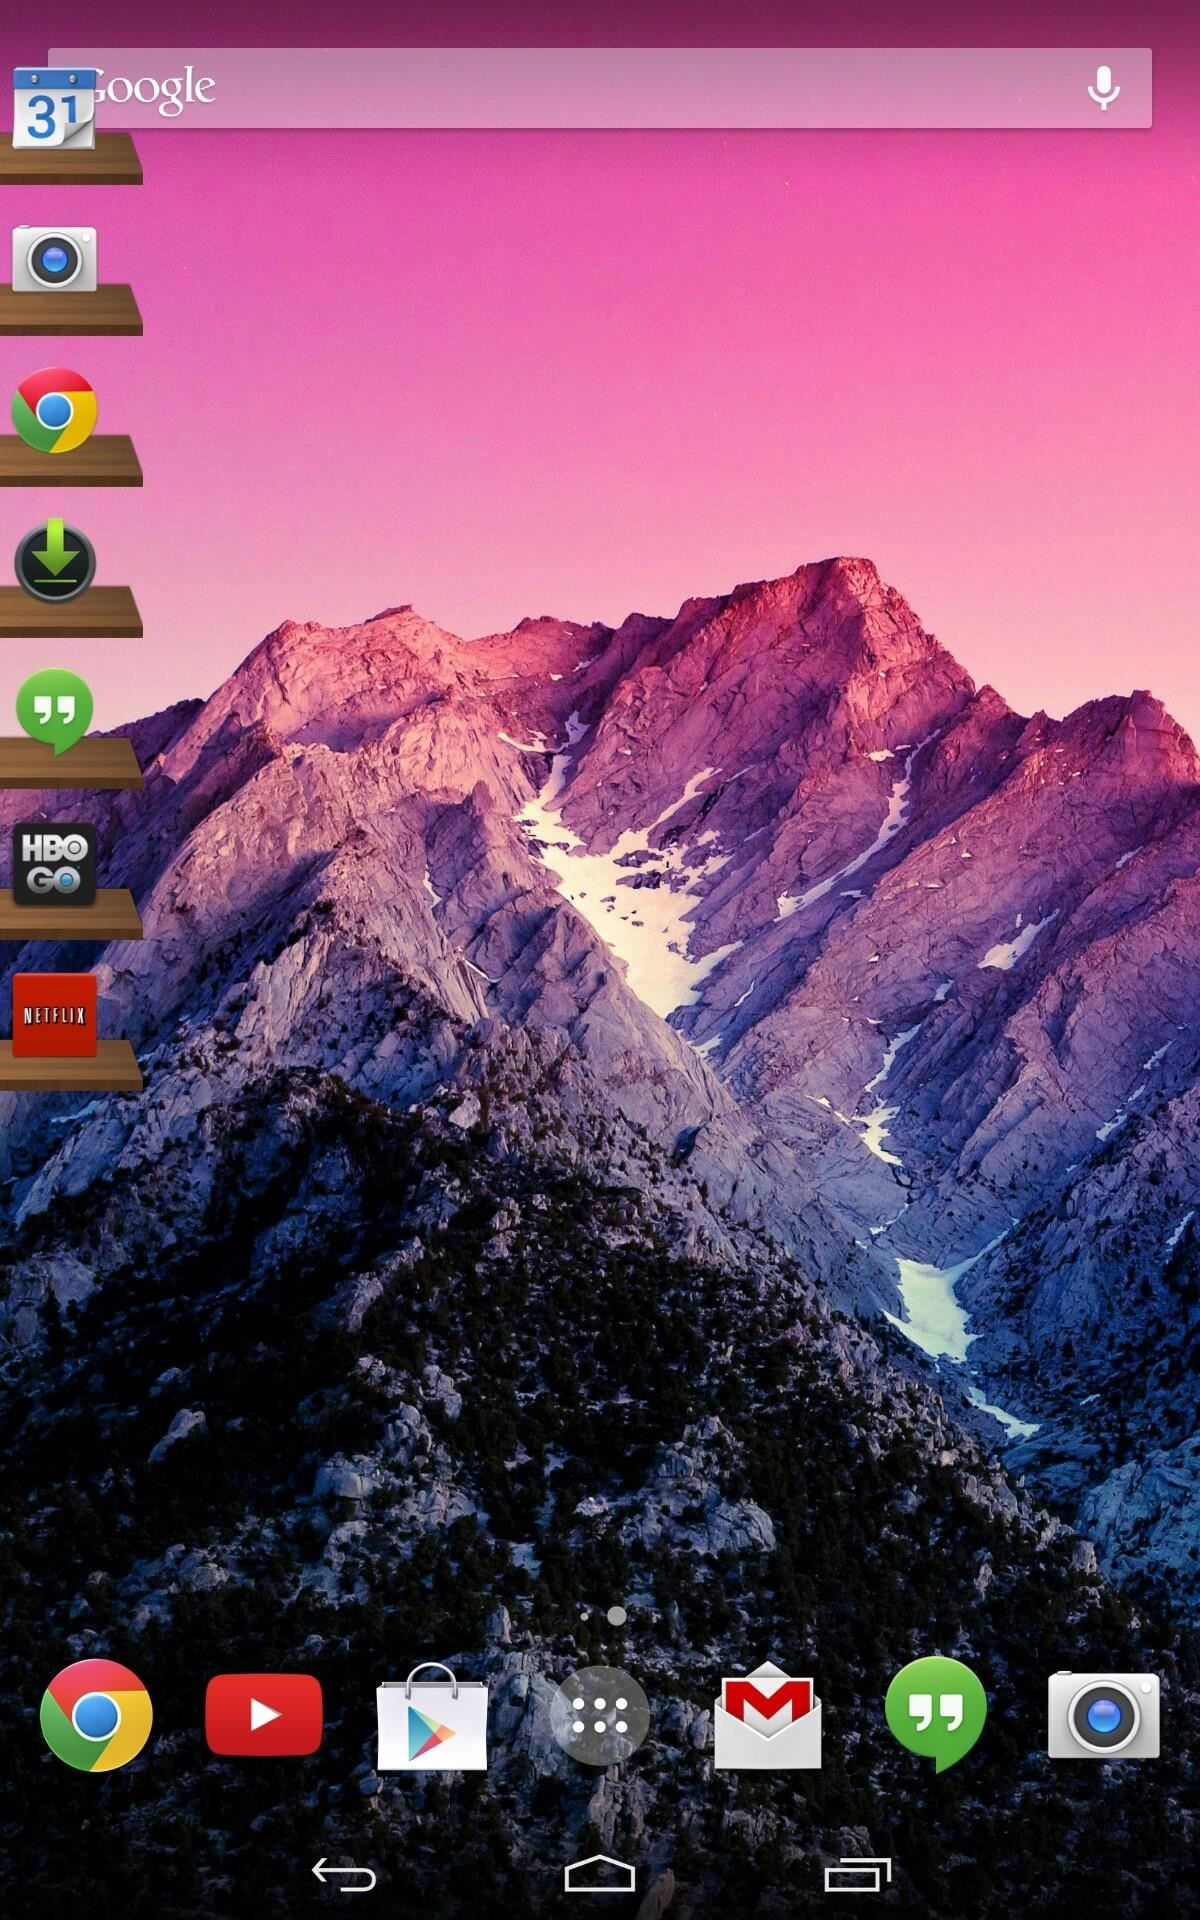 How to Quick Launch Apps from Anywhere on Your Nexus 7 with an Easy Access Side Dock